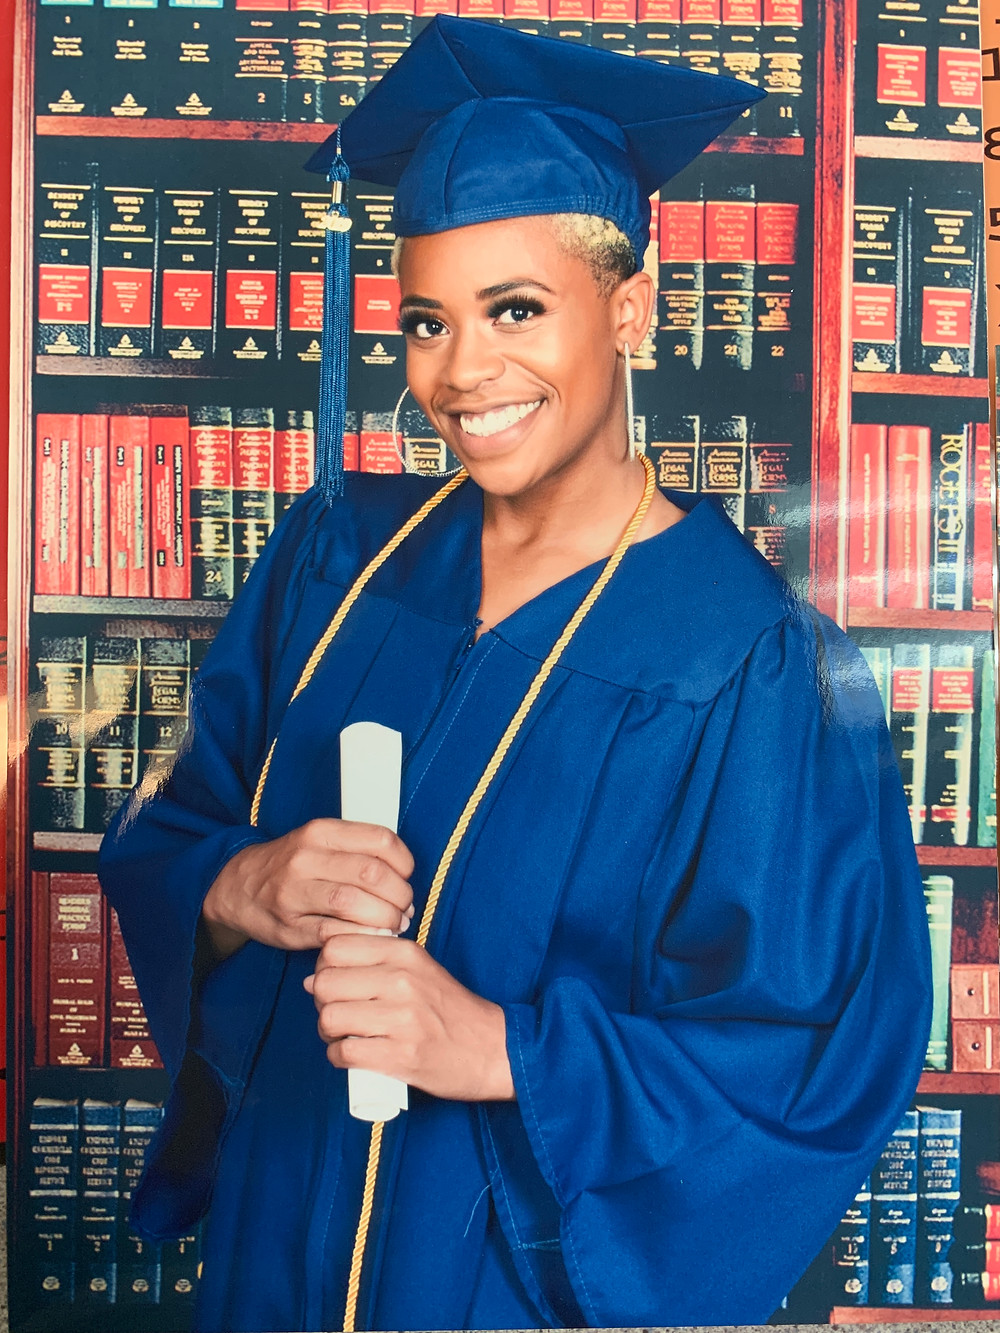 Black girl in graduation gown holding diploma behind a background of books.